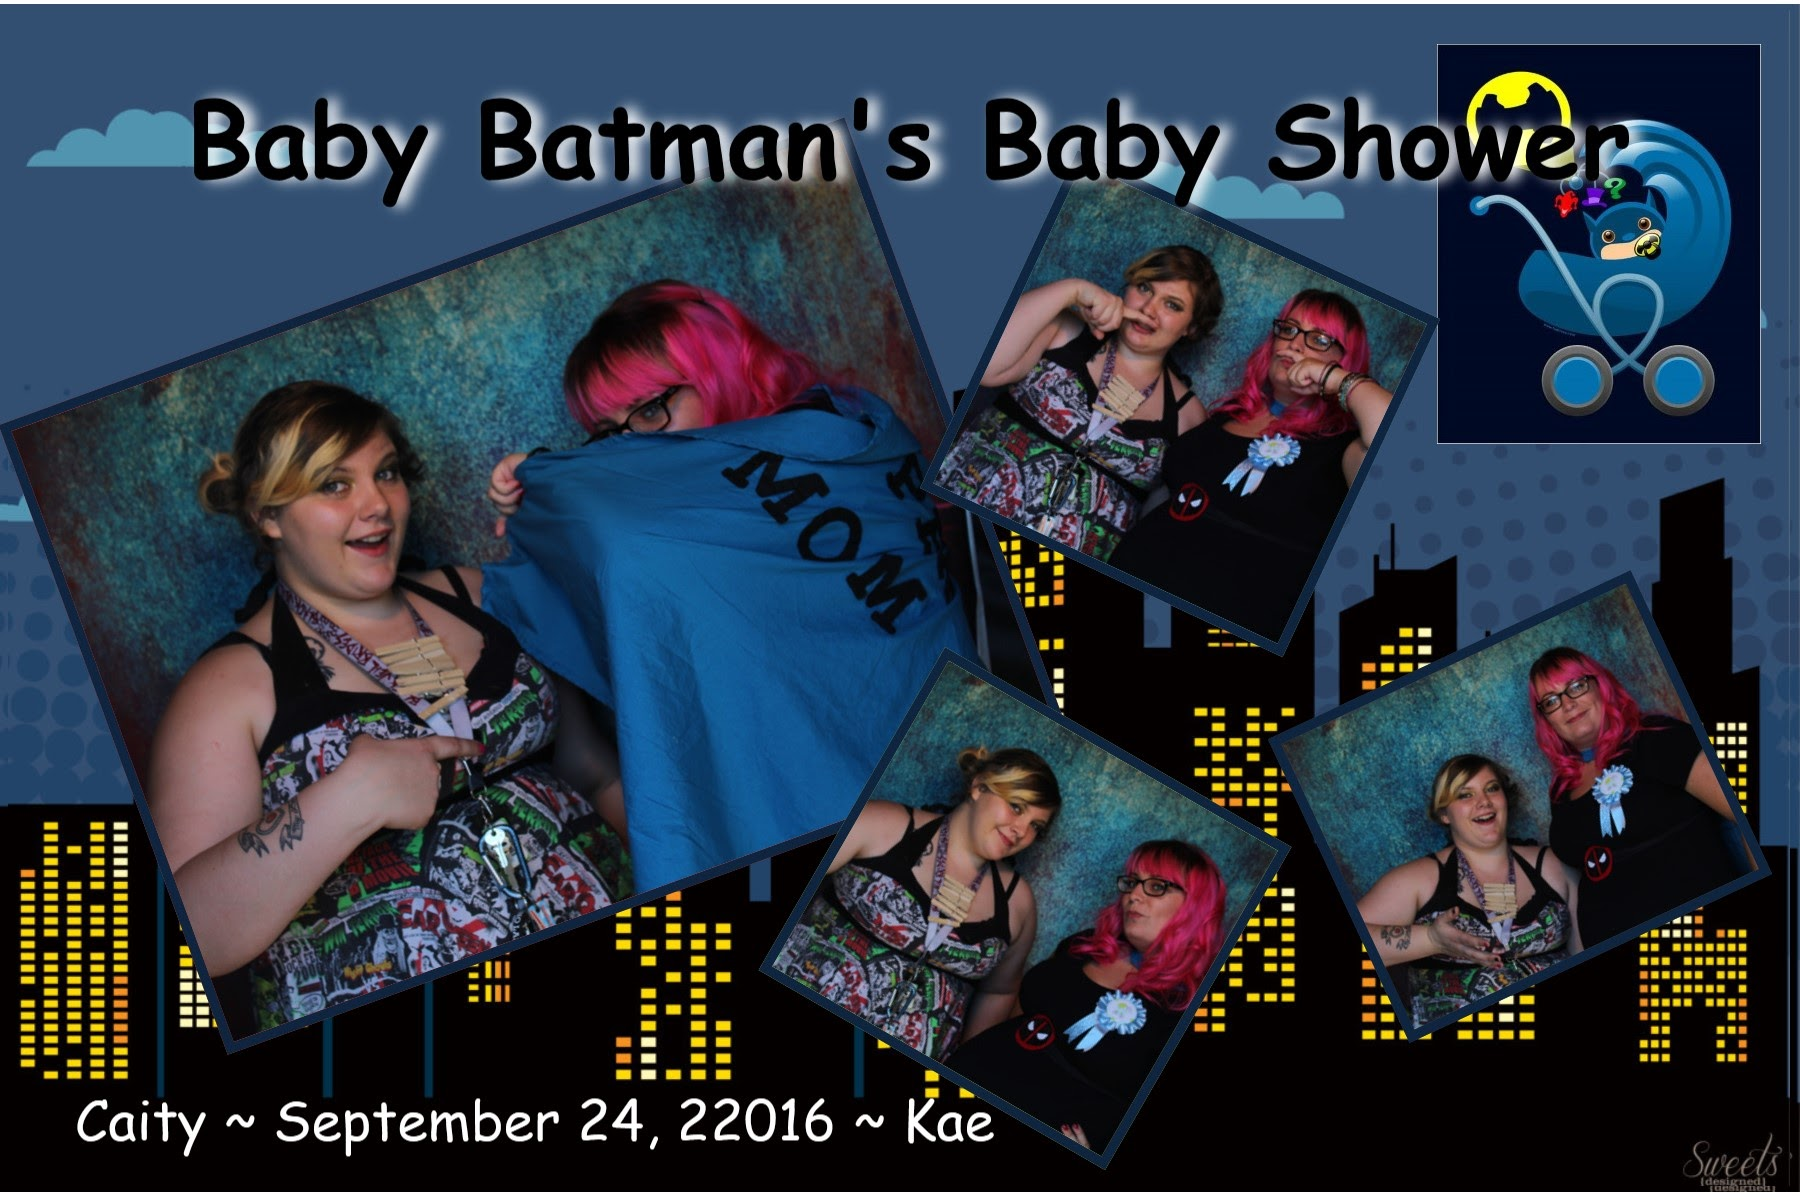 Baby Batman - Need I say more